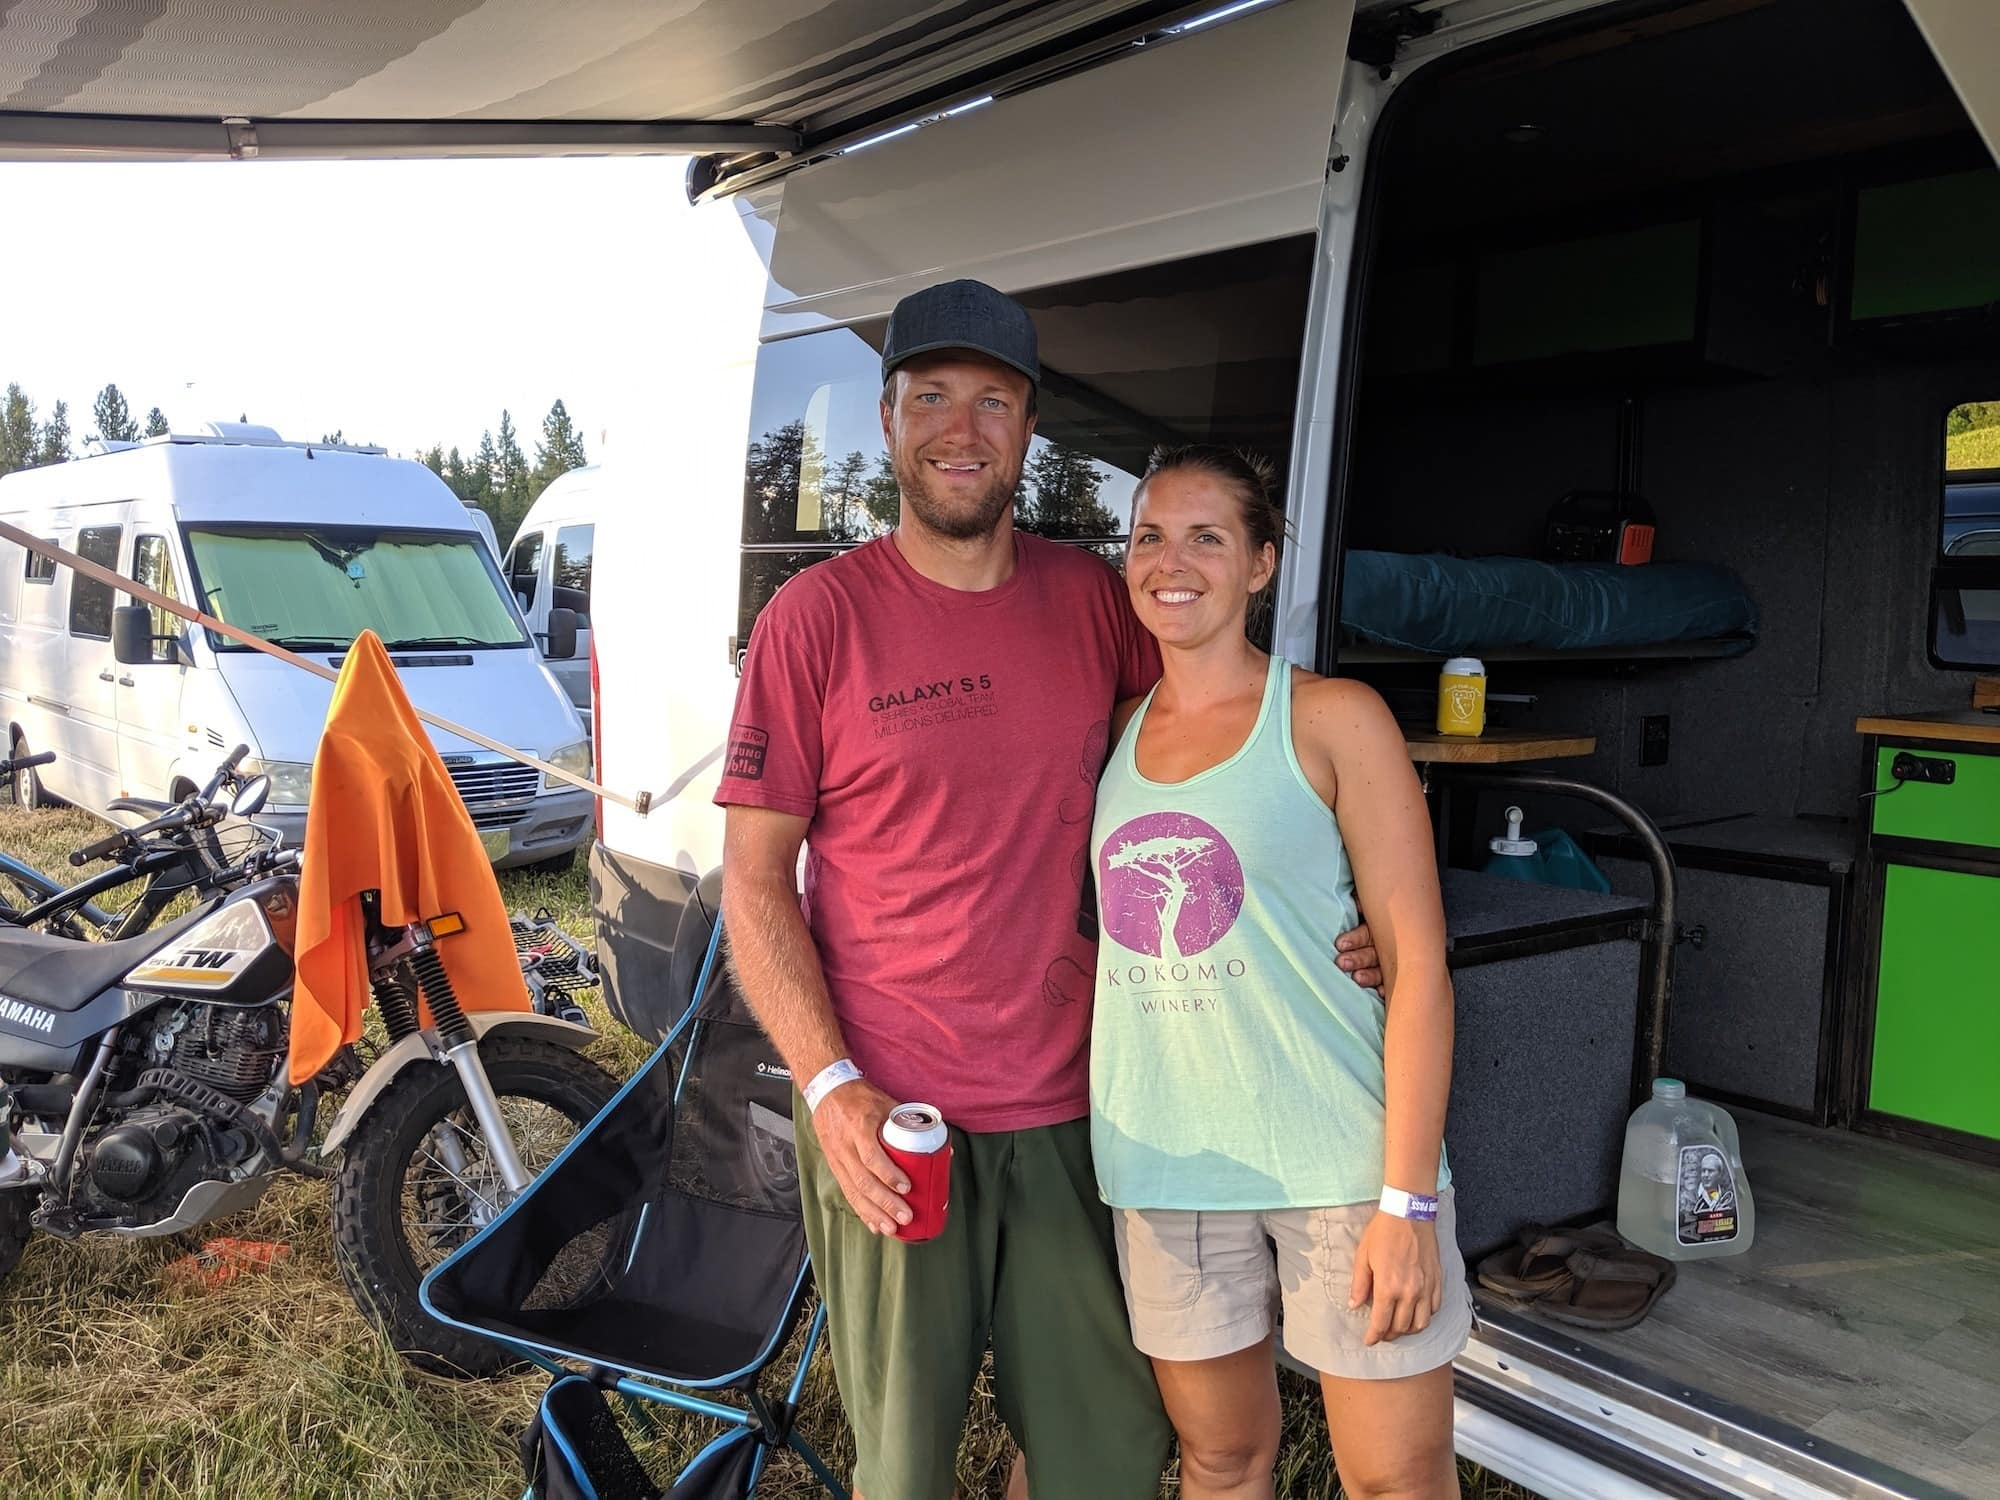 Check out 8 cool camper vans we saw at Open Roads Fest that were creative and unique at Jug Mountain Ranch in McCall, Idaho.